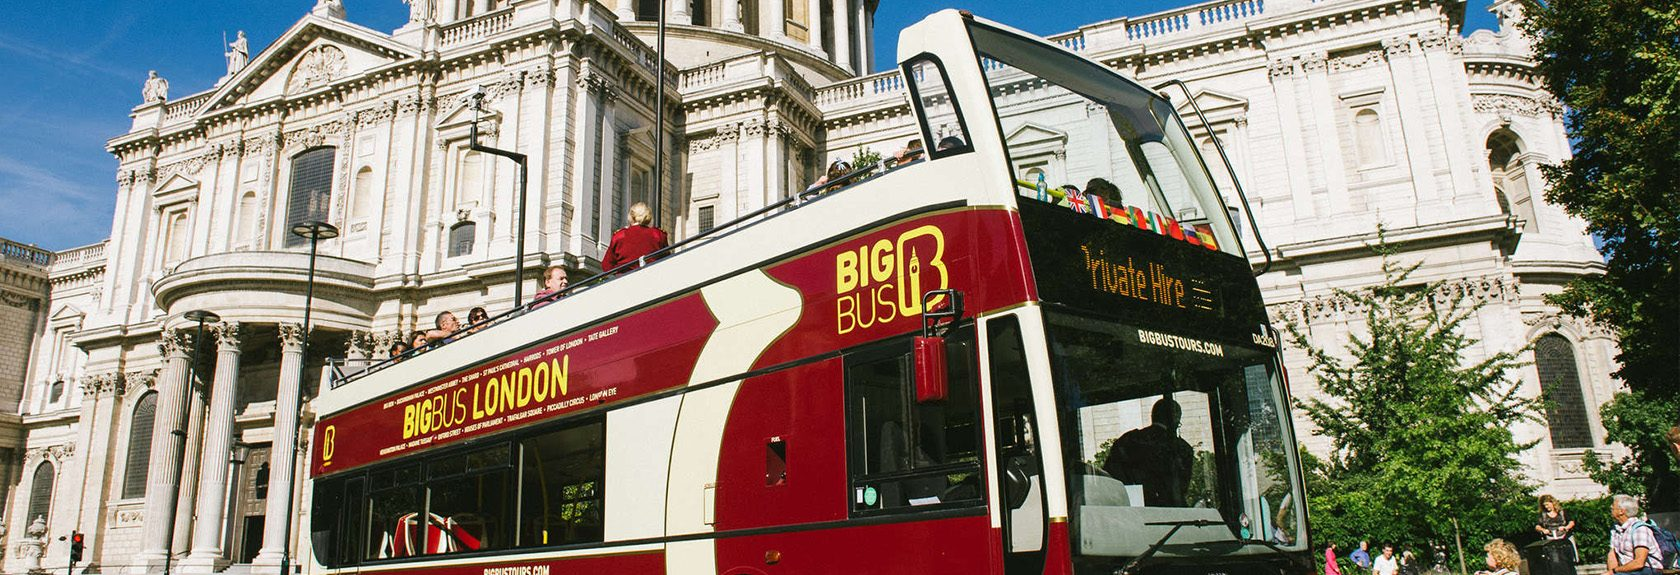 Londen Big Bus Tours (Hop-on Hop-off Bus)